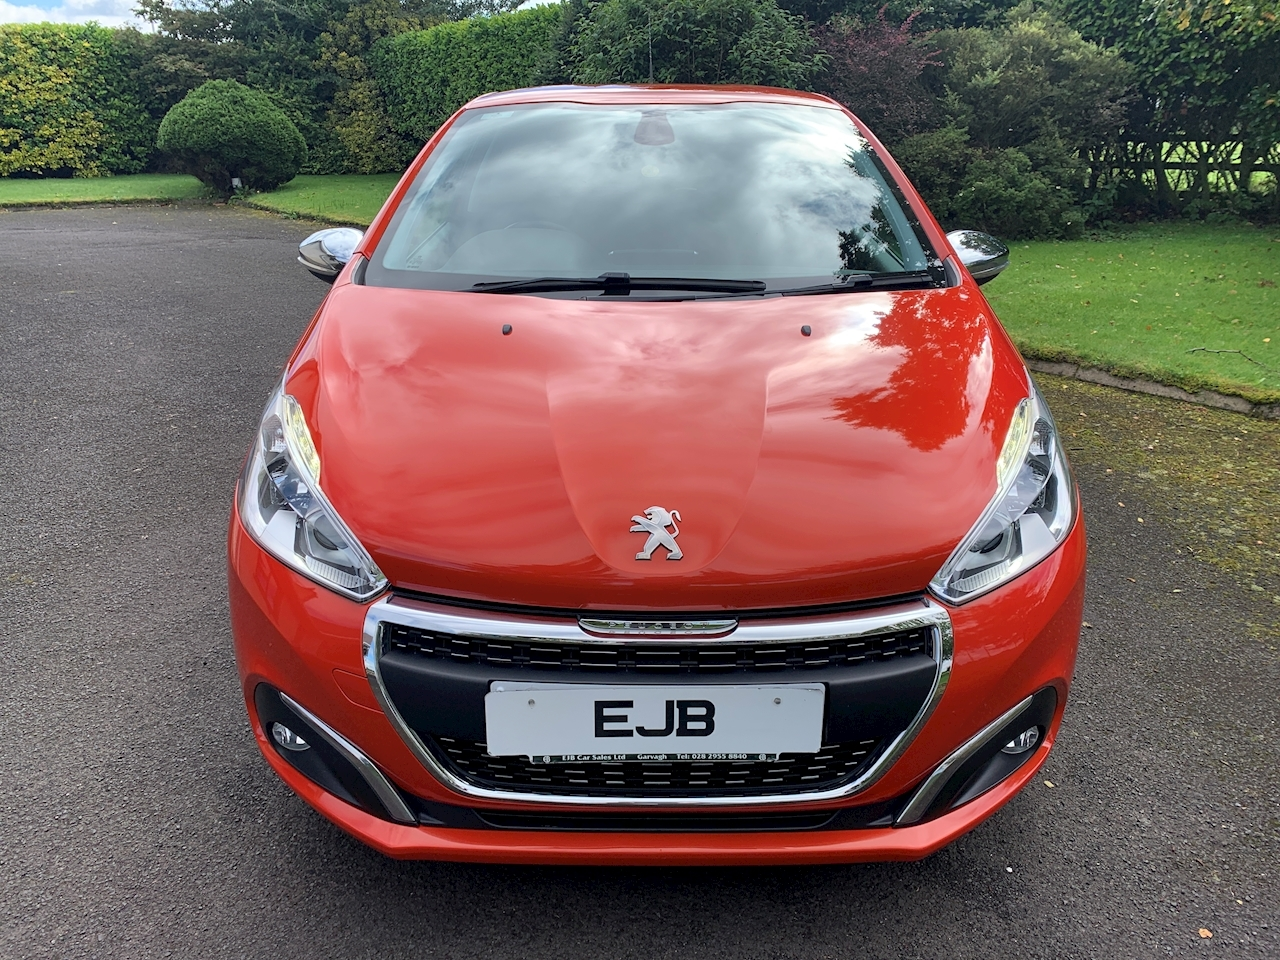 Peugeot 208 Allure Hatchback 1.2 Manual Petrol